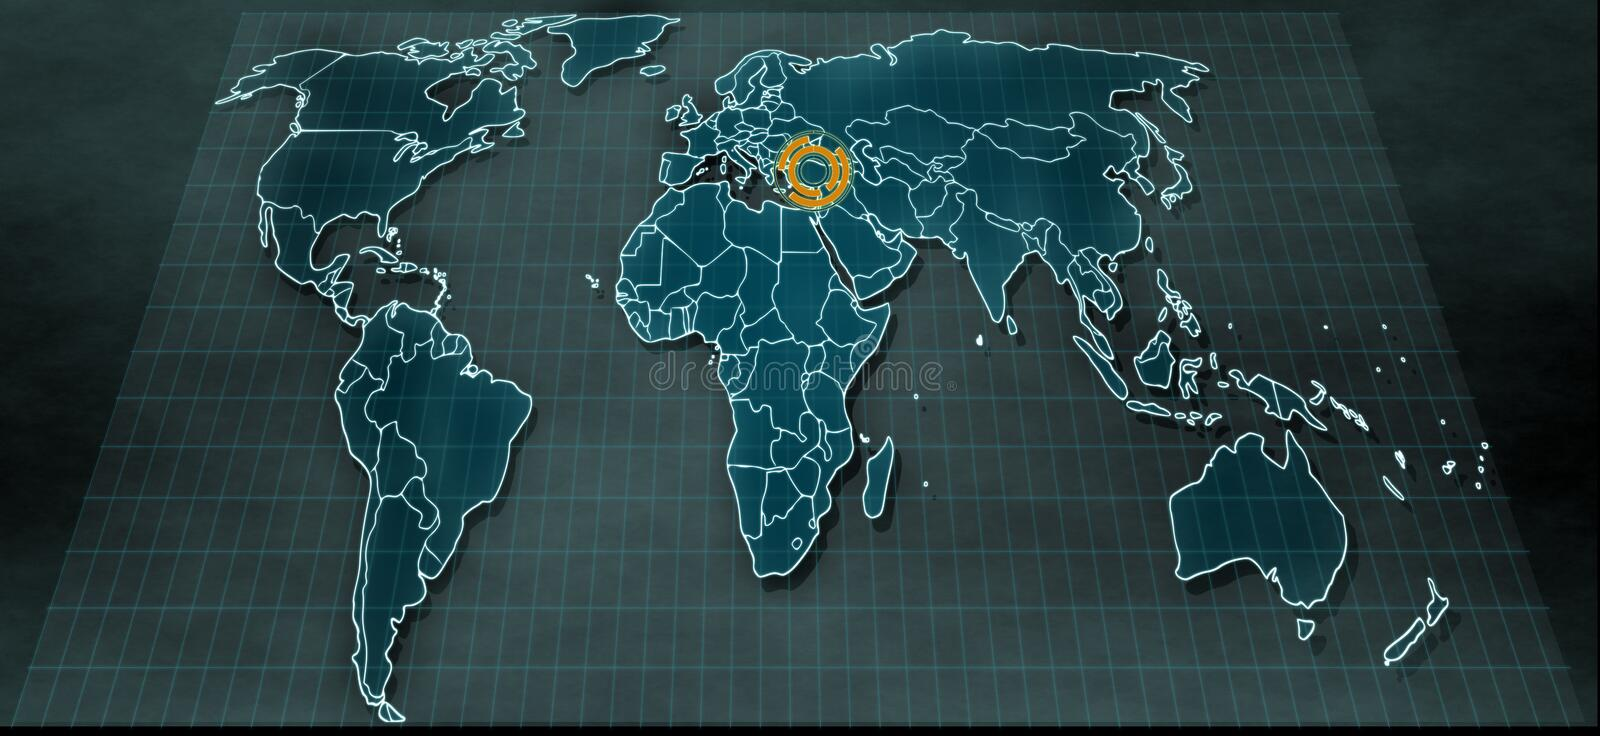 Futuristic world map in digital display with highlight on Turkey royalty free stock photo